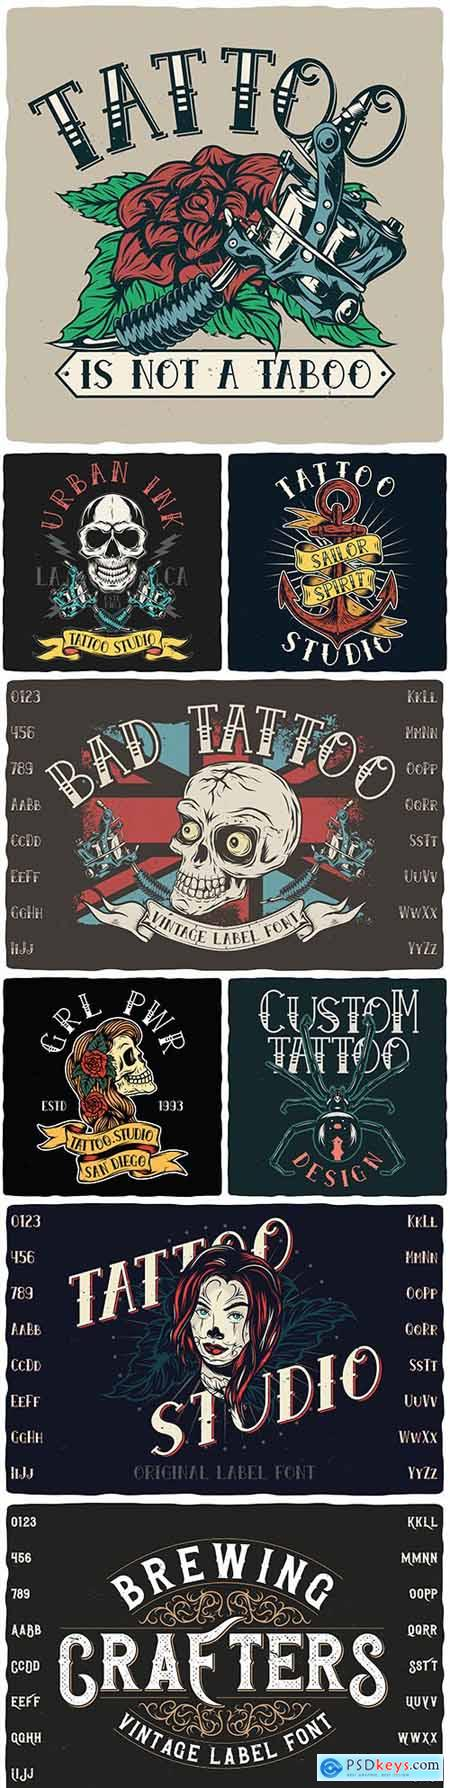 Vintage font and label design tattoo illustration